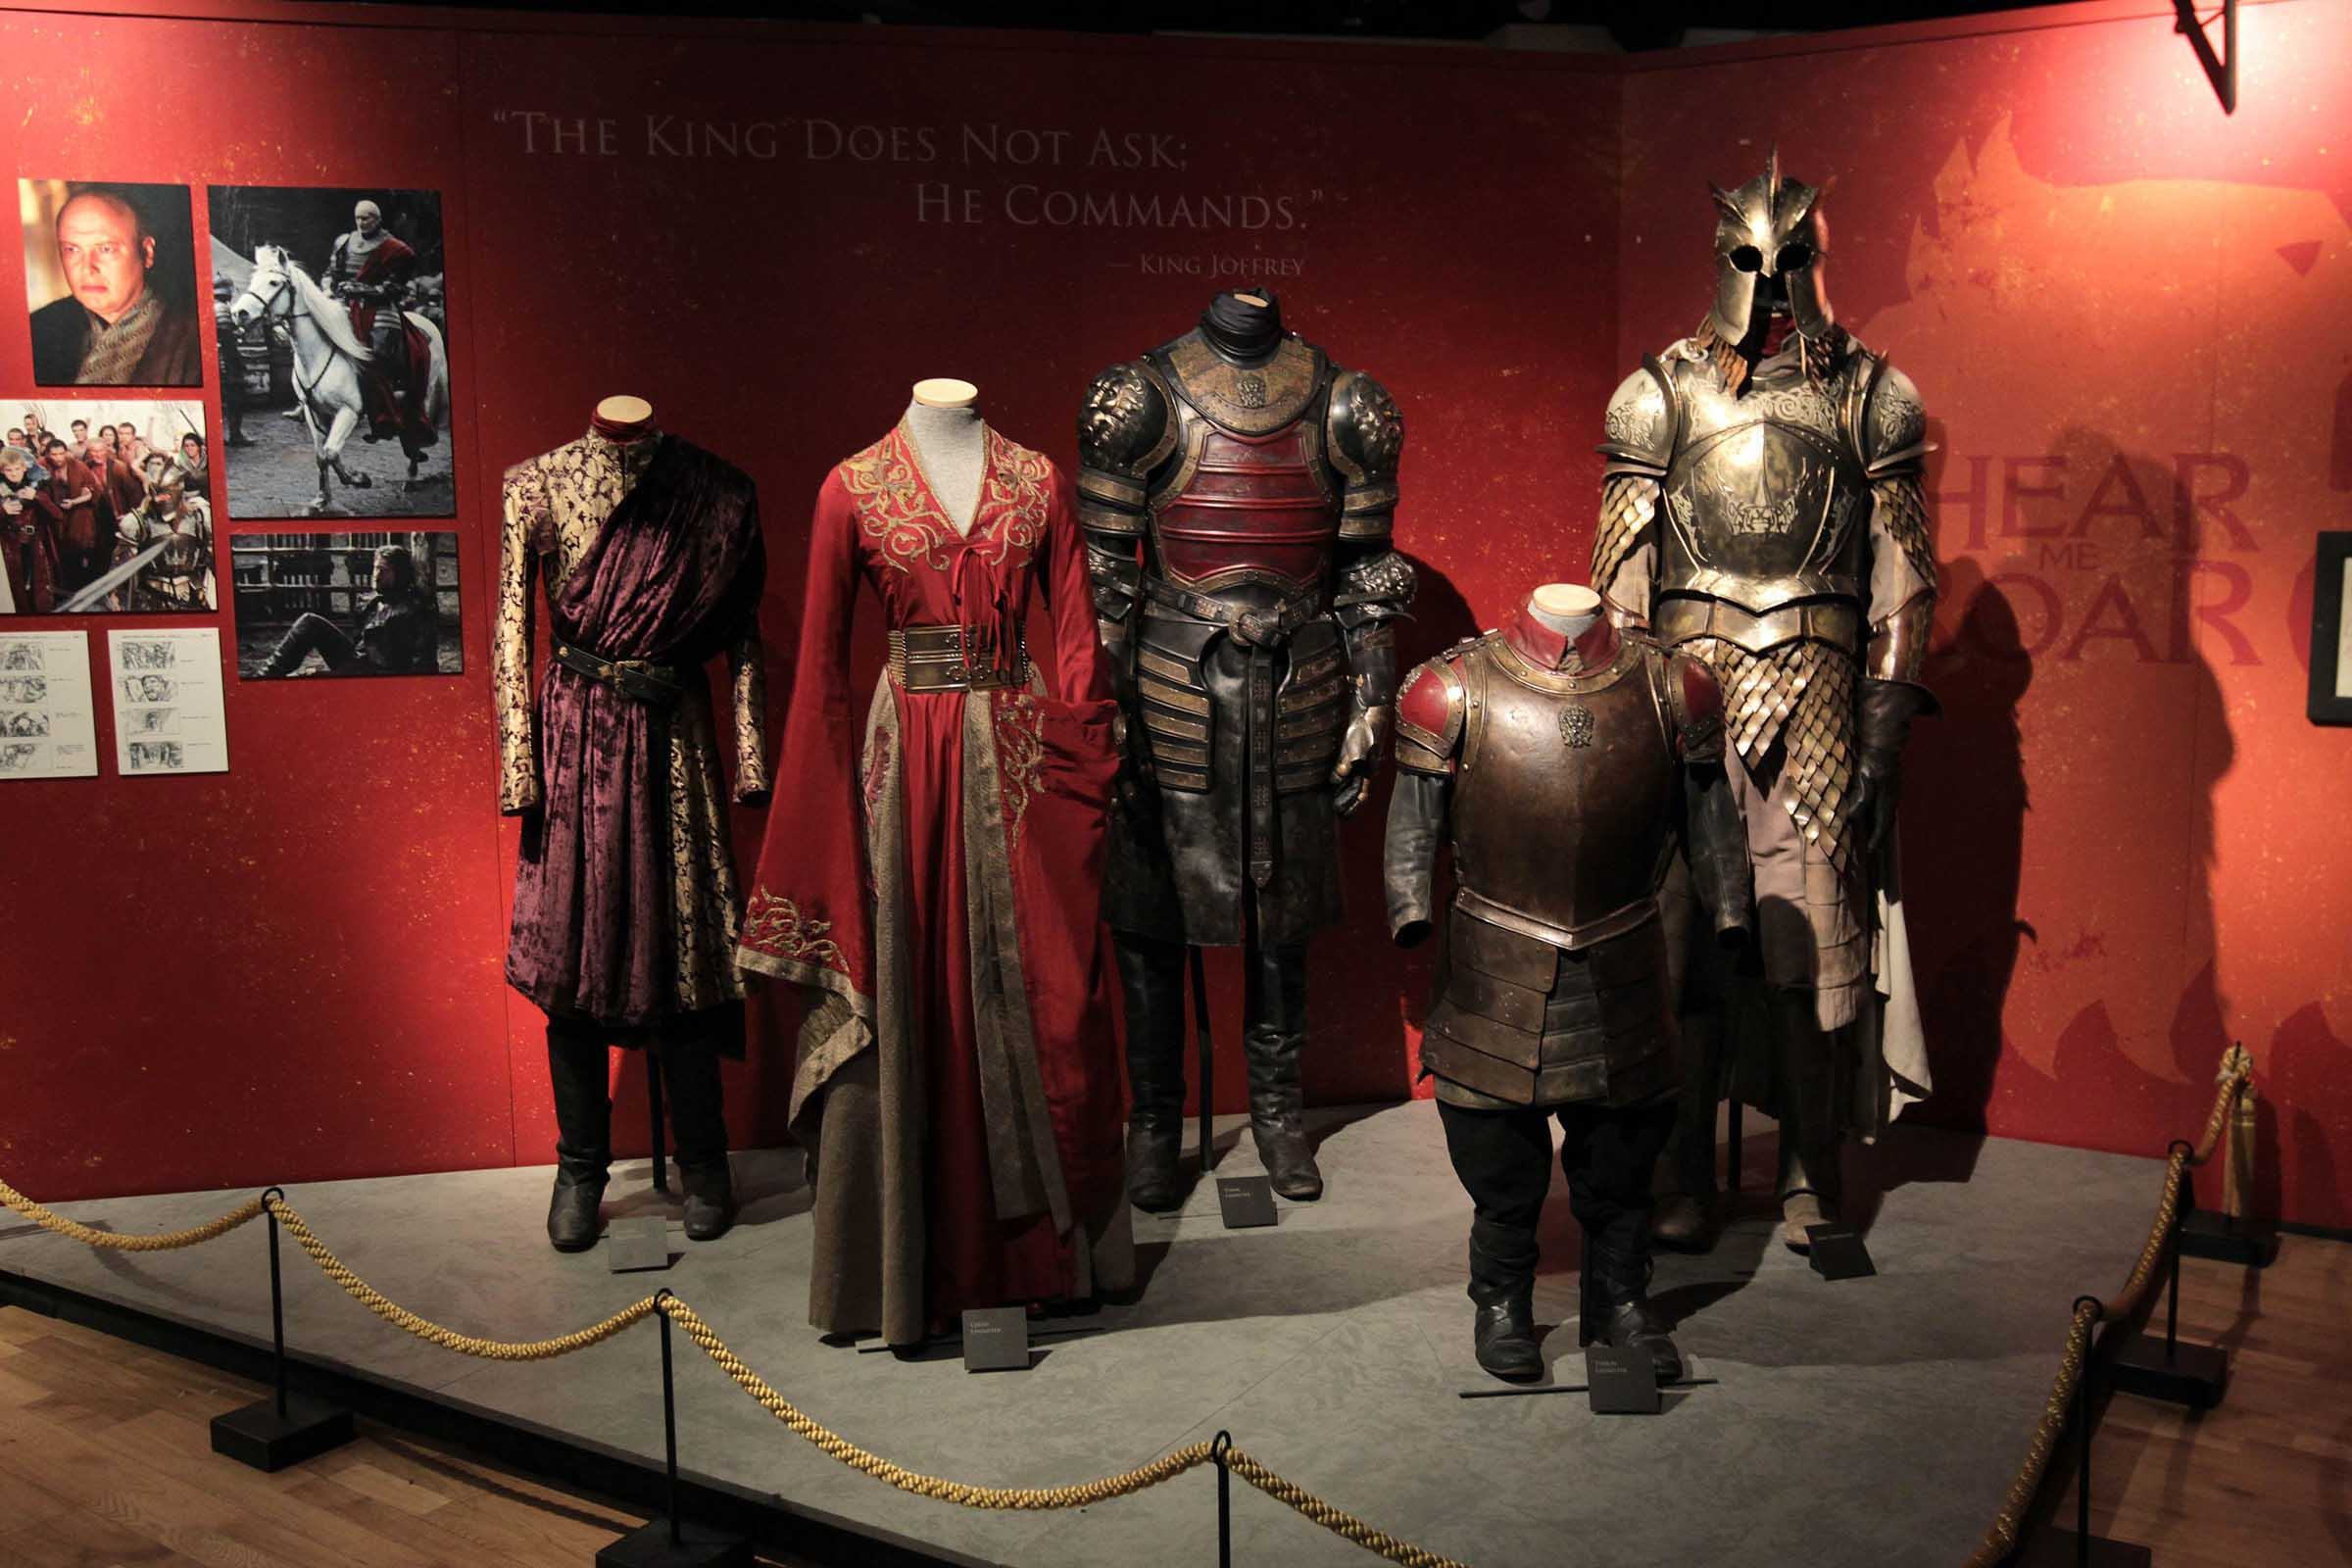 Pictured are costumes and outfits from HBO's Game of Thrones Exhibition which opens at Titanic Belfast tomorrow (June 8) until June 17. More than 13,500 fans have already booked up tickets to the hotly-anticipated exhibition which was brought to Northern Ireland by NITB in partnership with NI Screen and Titanic Belfast. Belfast is the only city in the British Isles hosting the exhibition at Titanic Belfast and 30% of bookings have been made by fans as far afield as Australia, the Philippines and the USA.